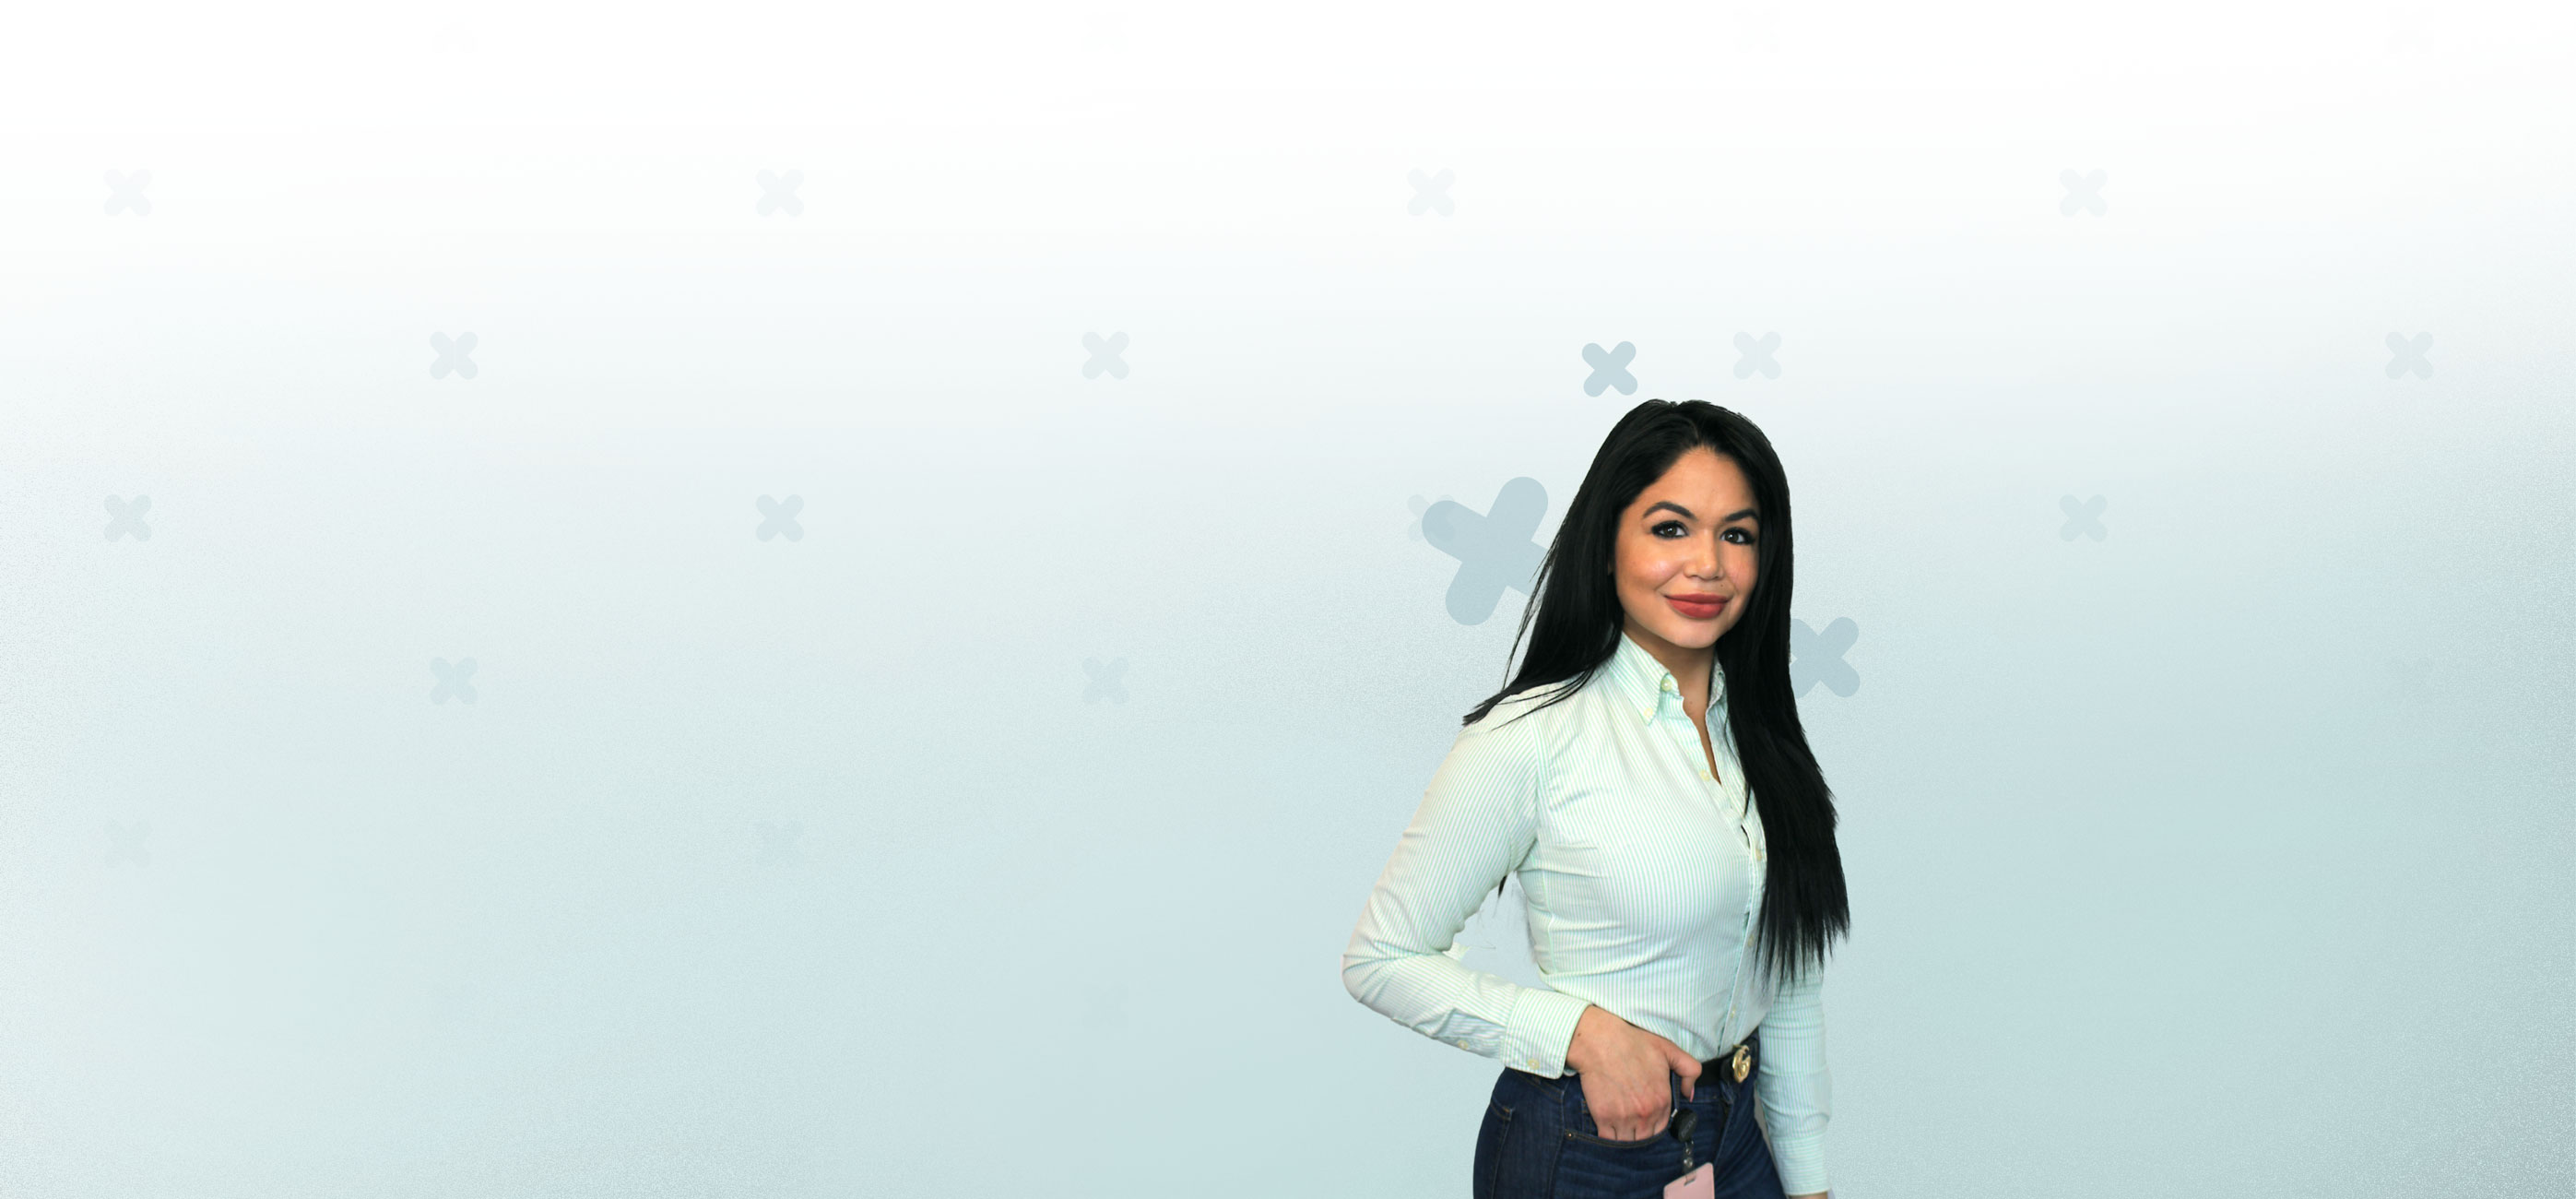 female employee banner